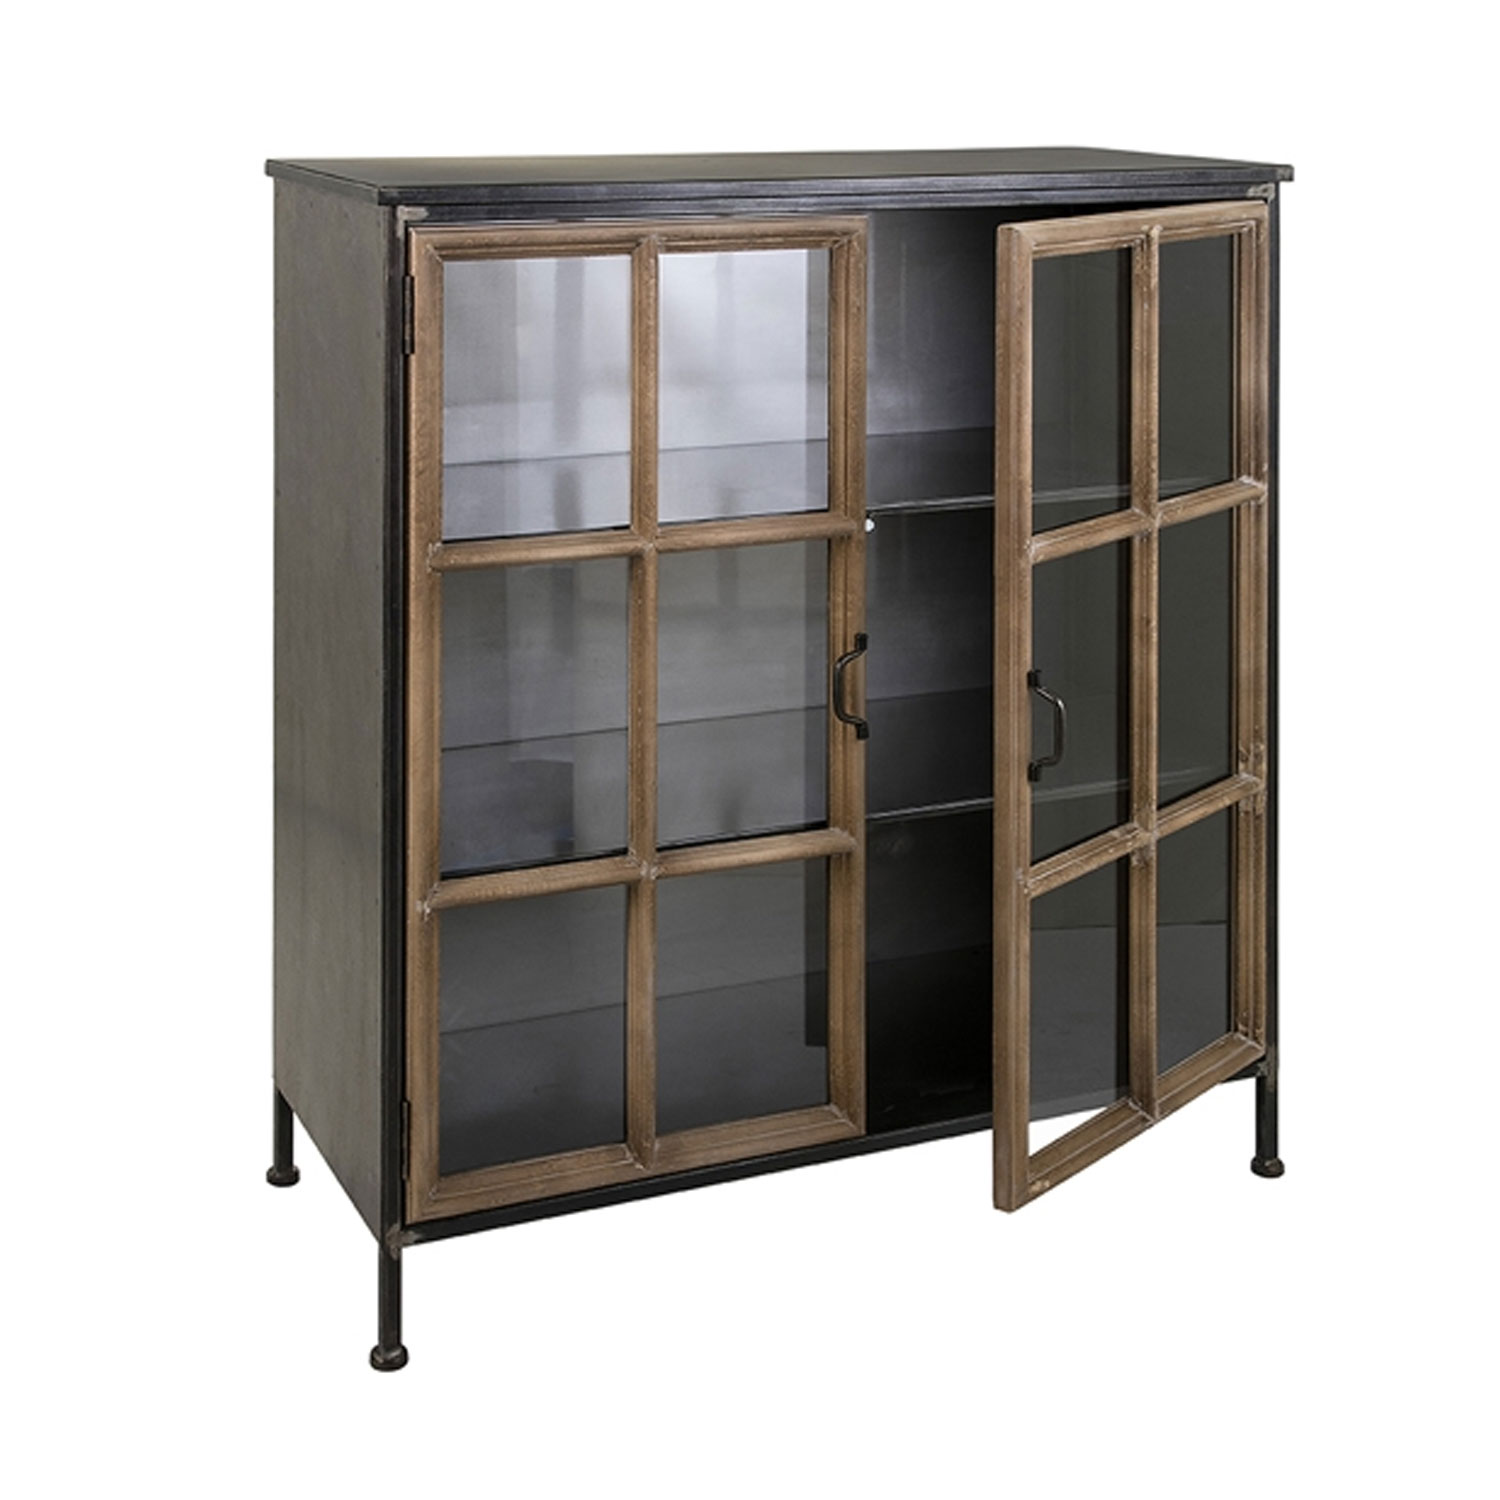 Imax 40534 Lawrence Wood Amp Metal Cabinet Hope Home Furnishings And Flooring